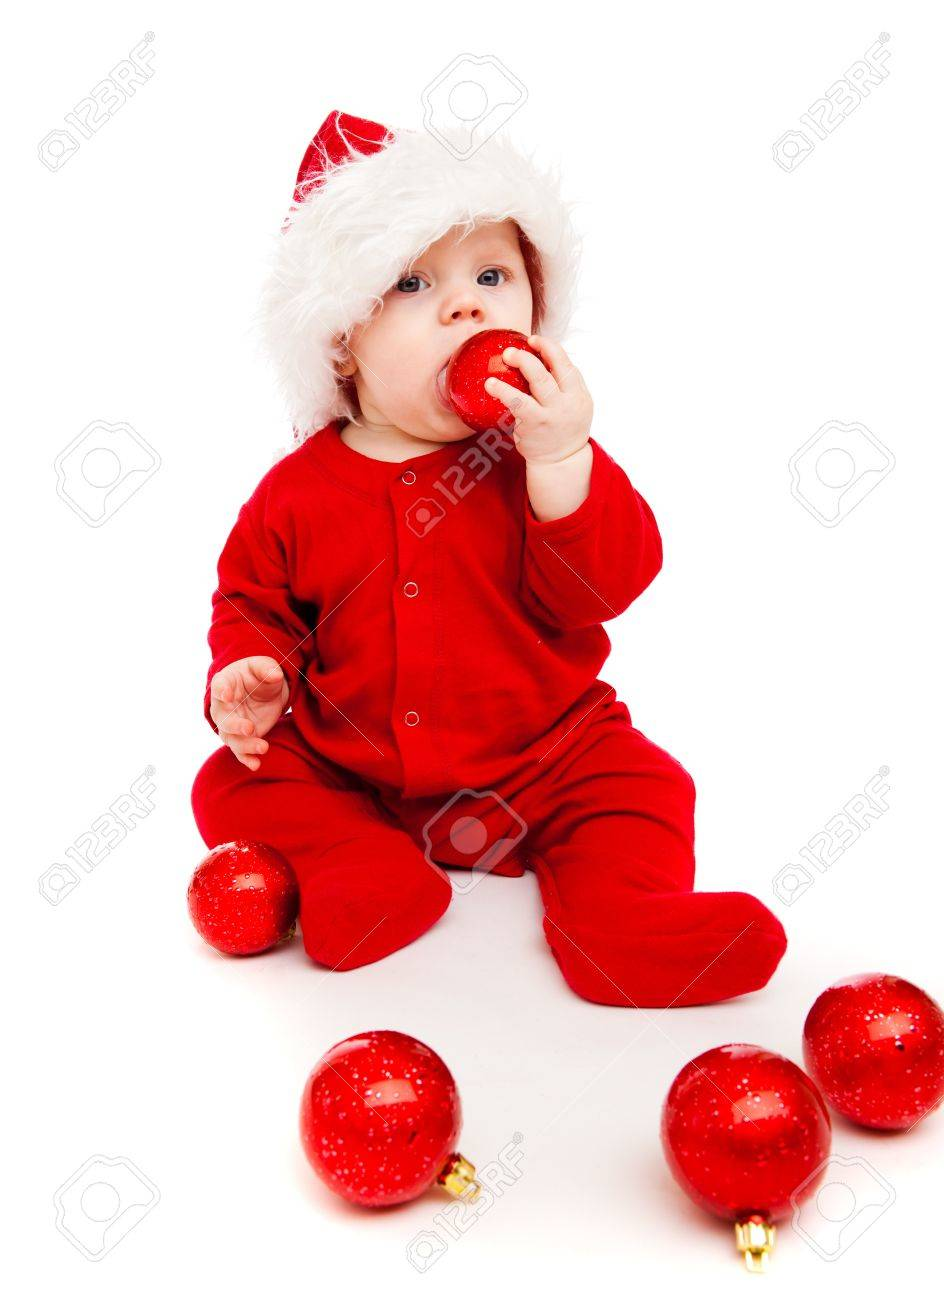 Gorgeous baby playing with red Christmas balls Stock Photo - 8168581